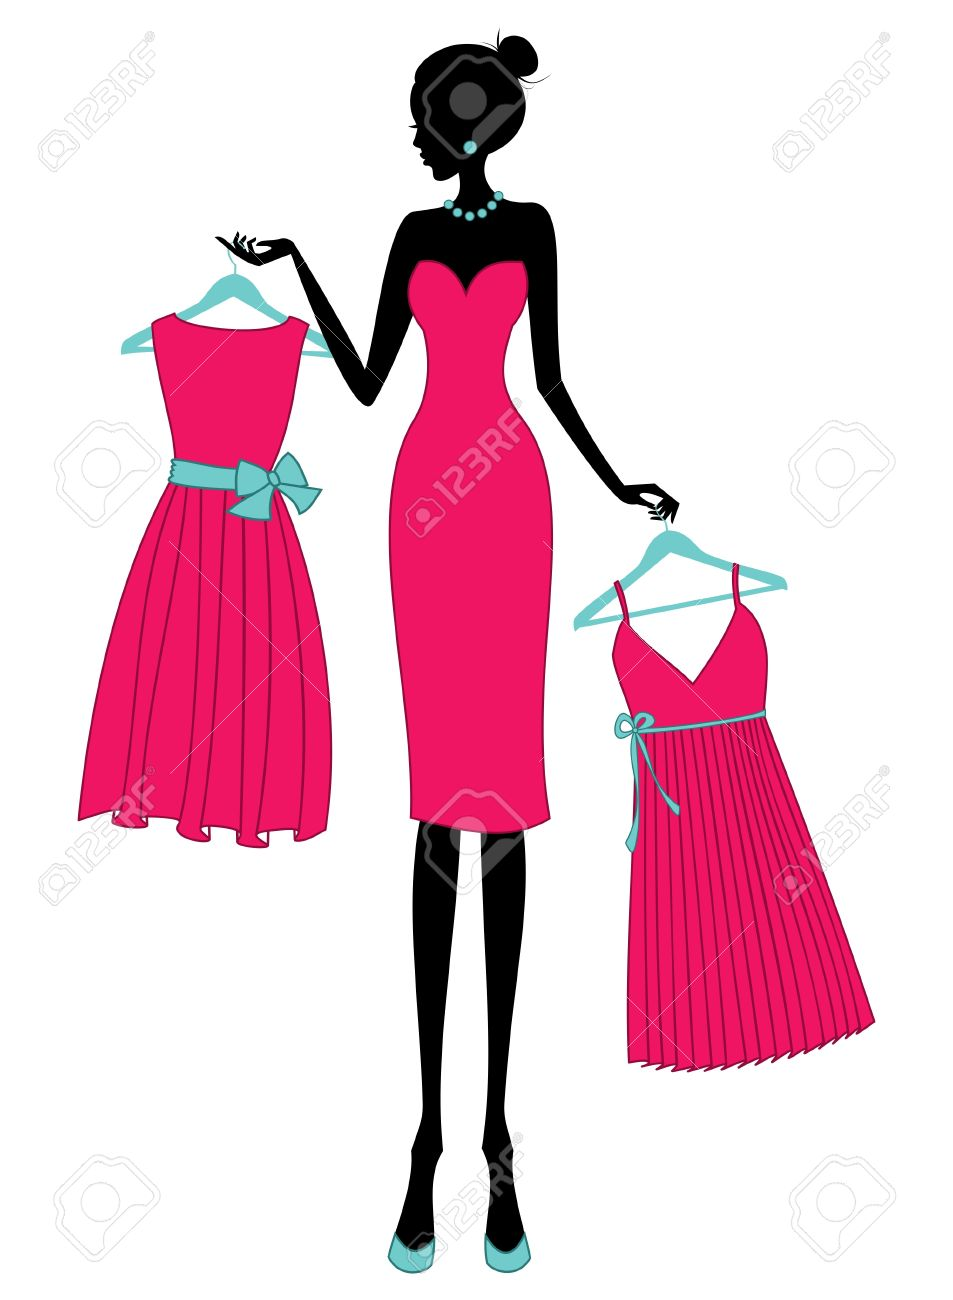 Illustration of a young elegant woman shopping for a dress. Stock Vector - 13533495